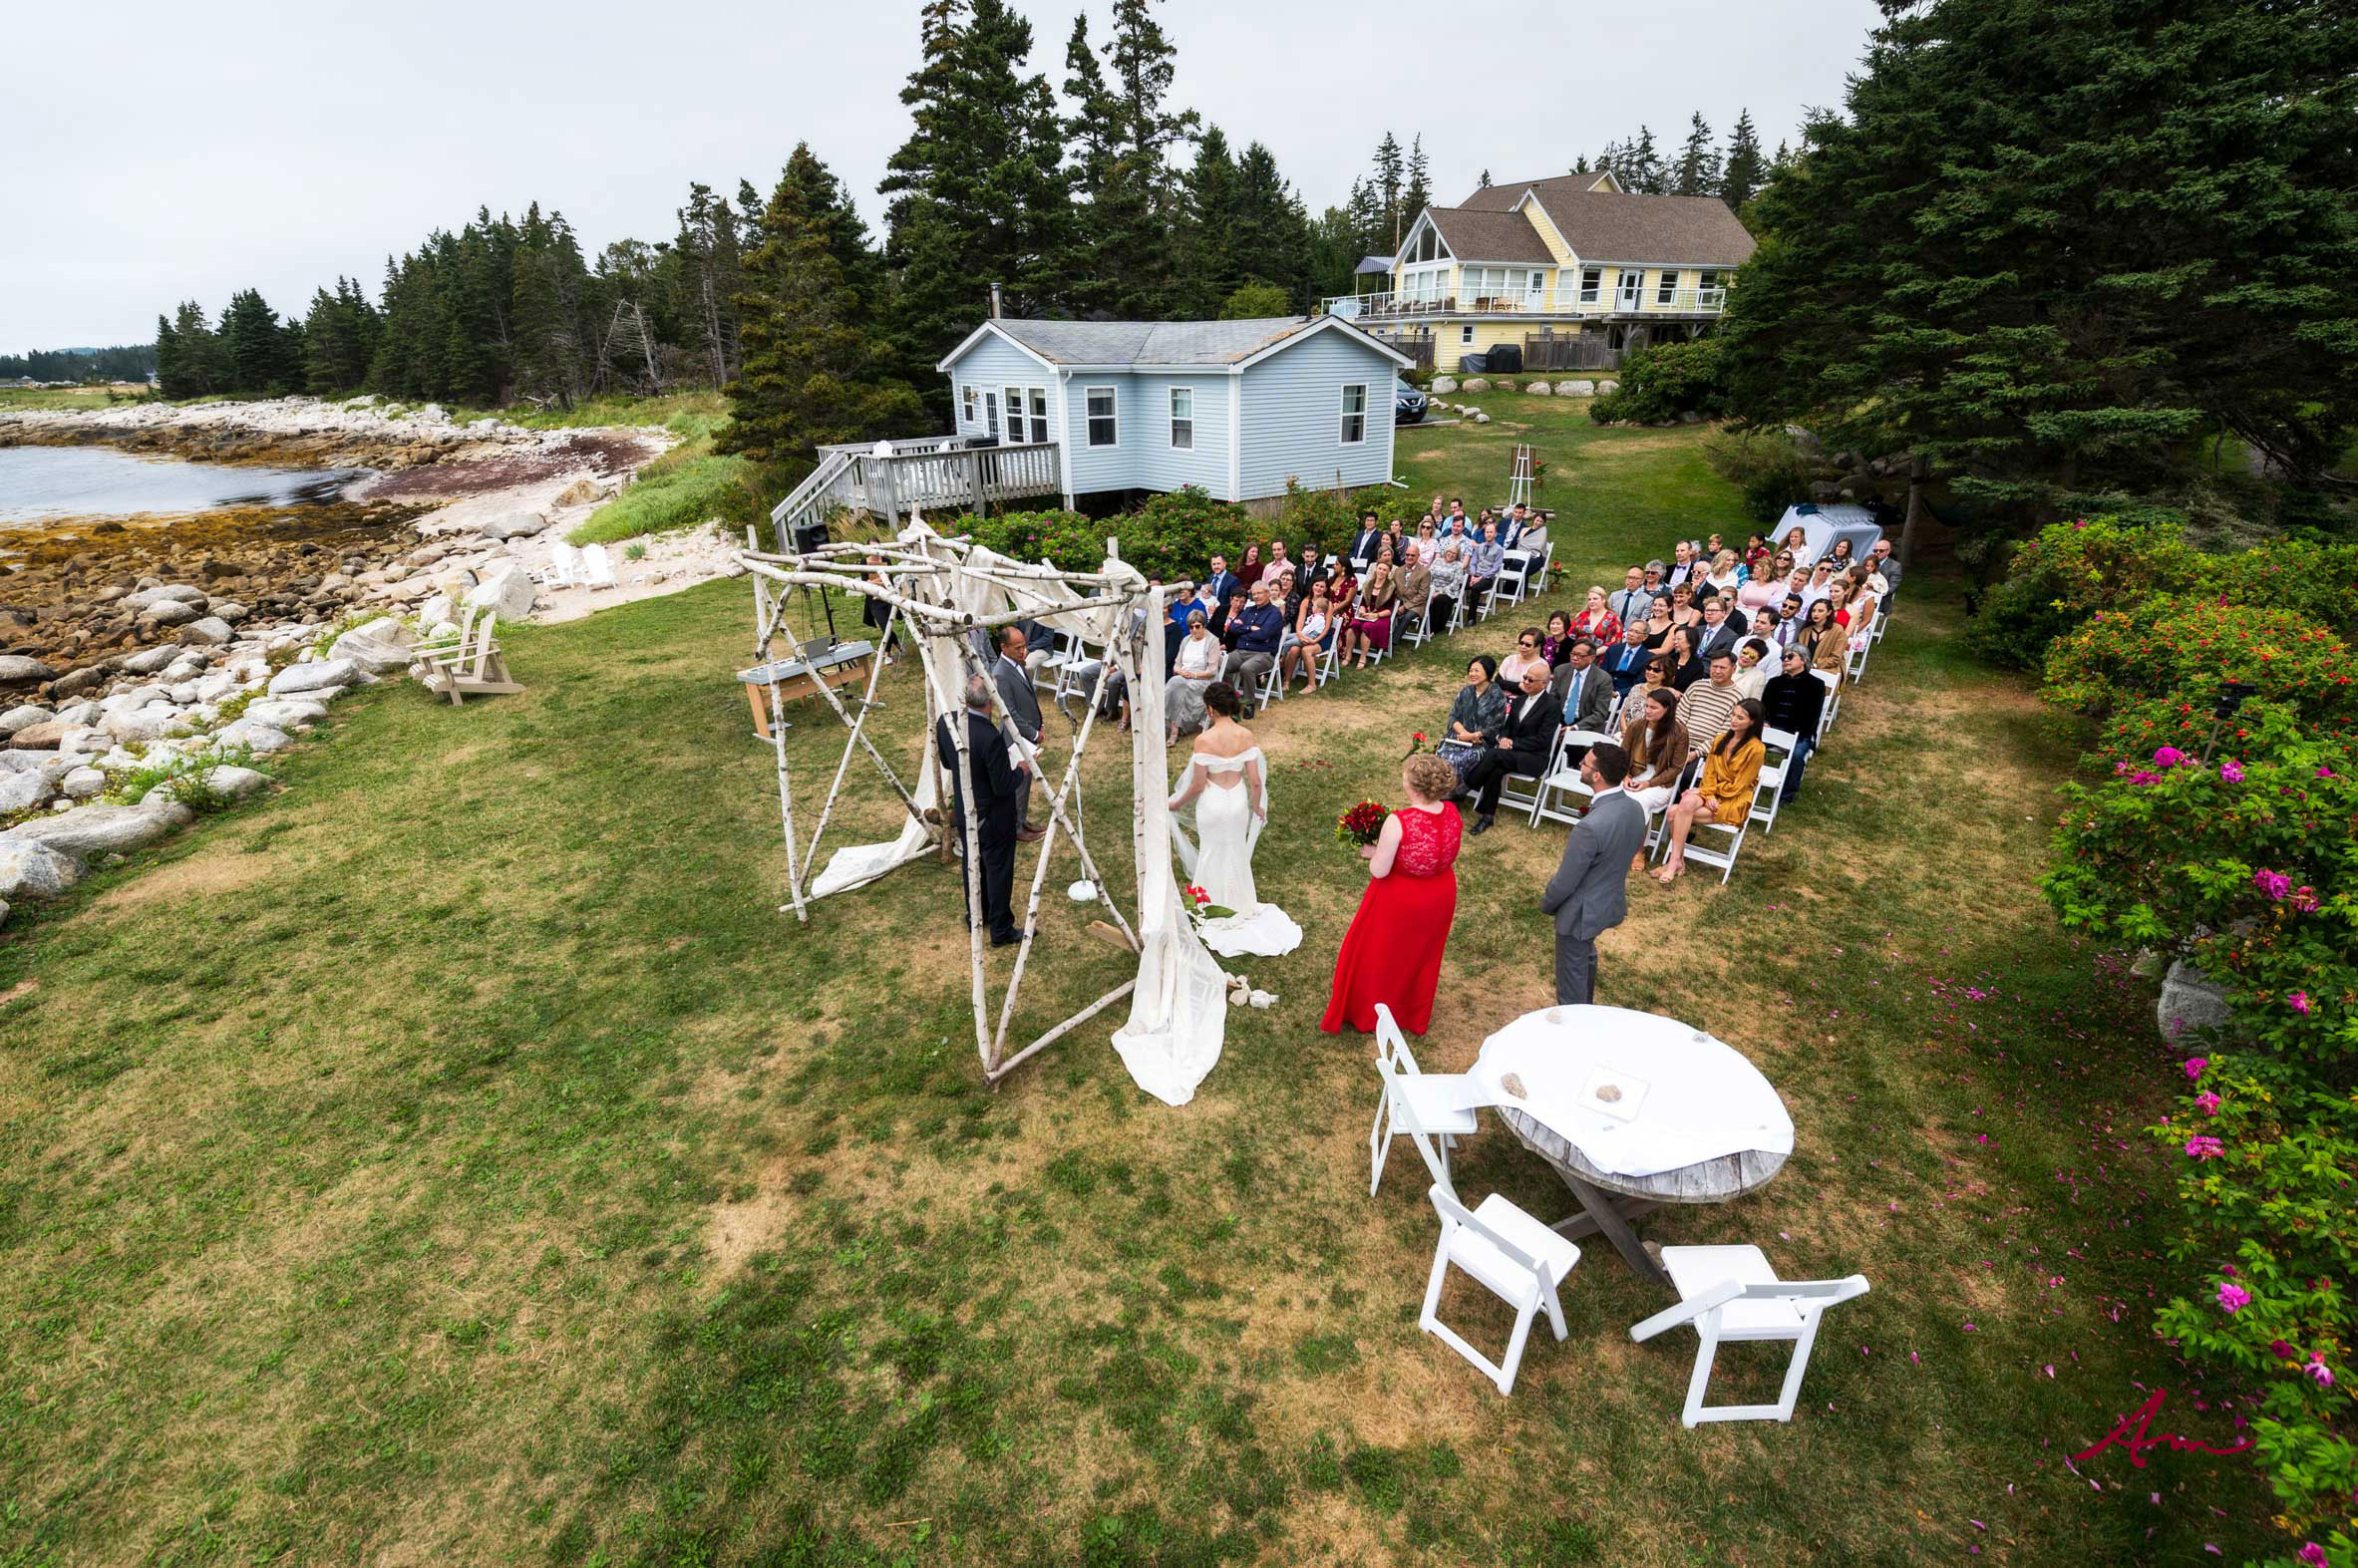 What a setting for a wedding!